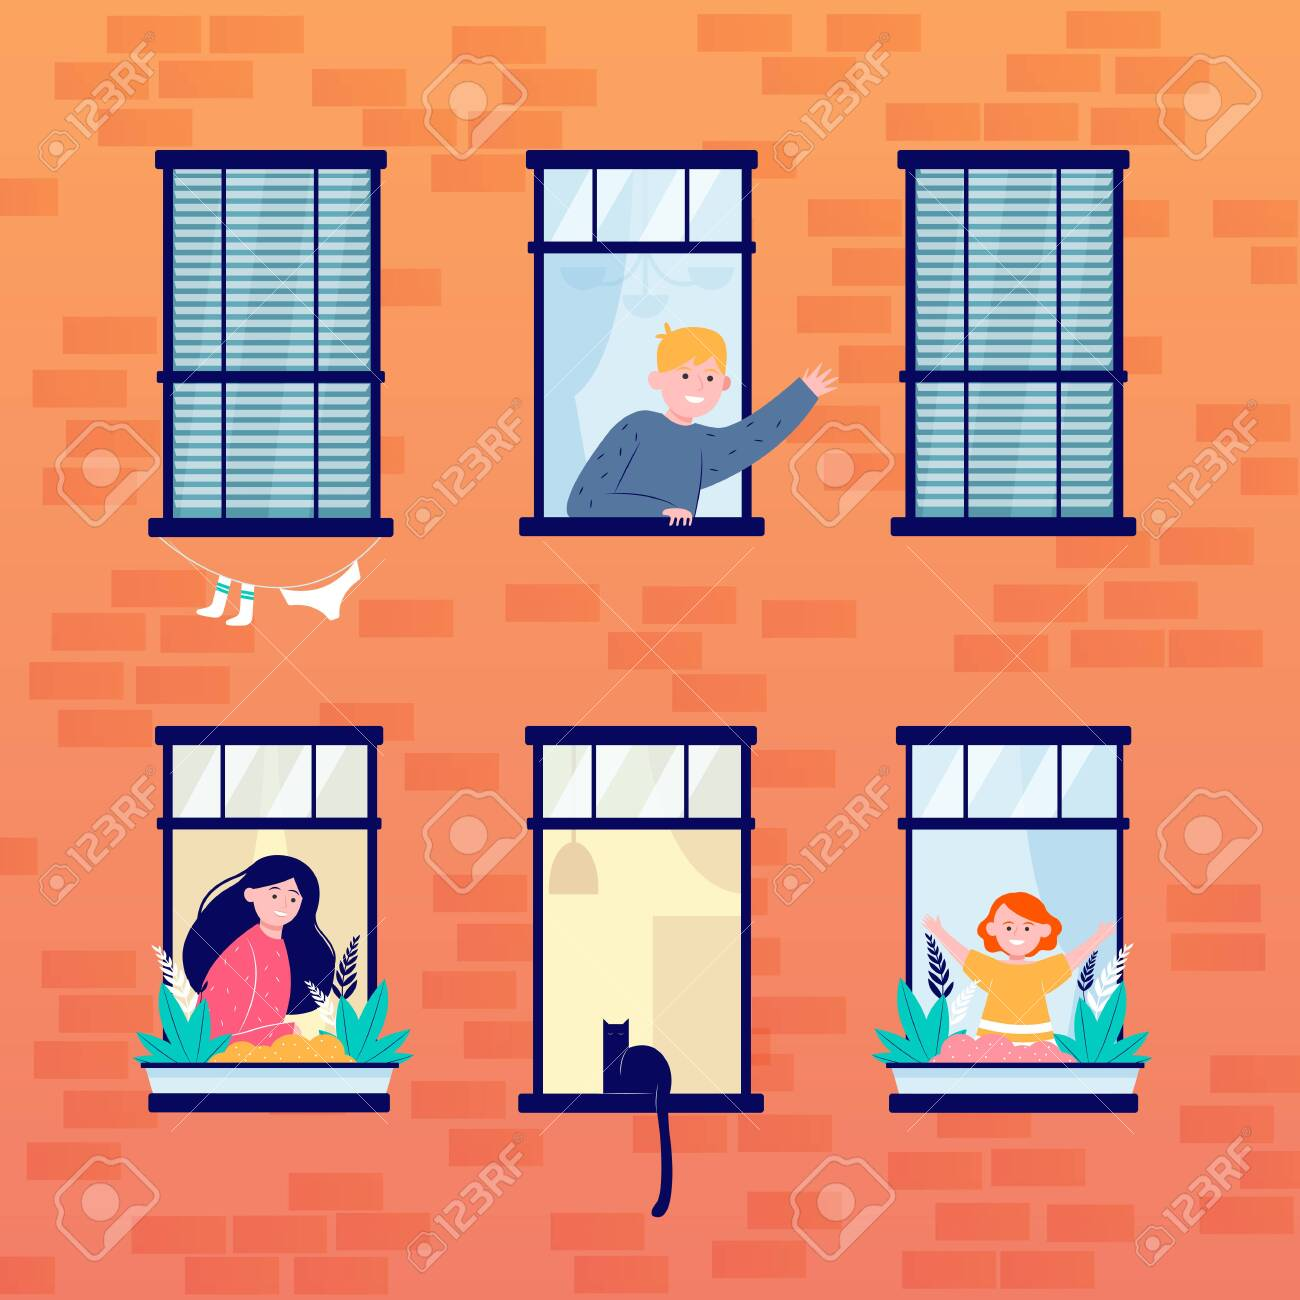 Daily life in open windows. Neighbor, building, home flat illustration. Lifestyle and neighborhood concept for banner, website design or landing web page - 147790794